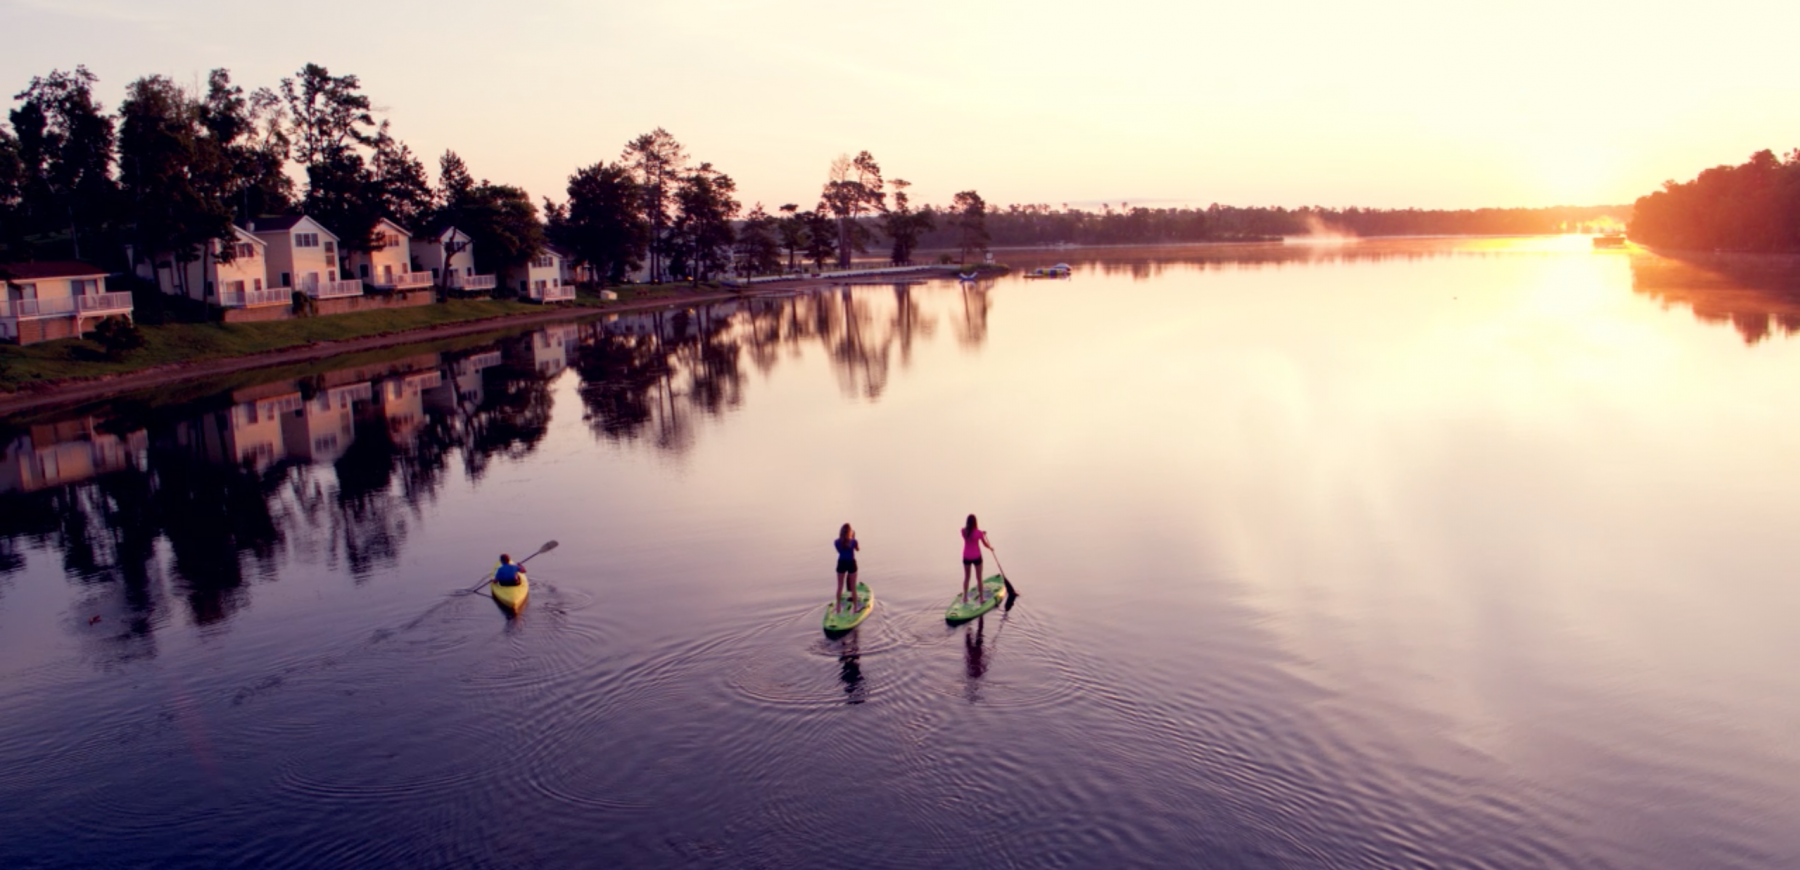 Water sports at sunrise